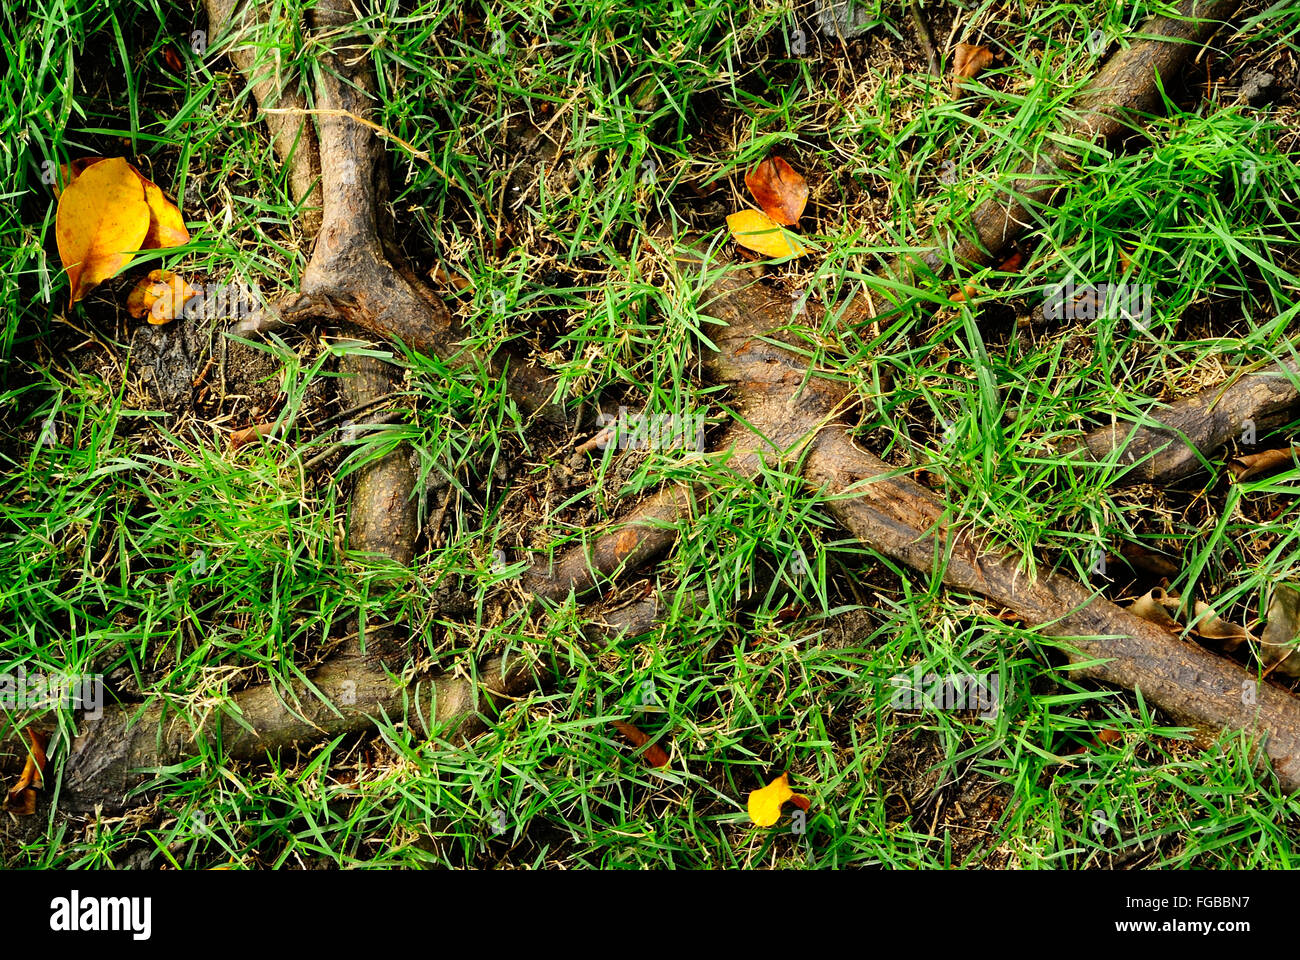 Directly Above Shot Of Grass And Roots - Stock Image